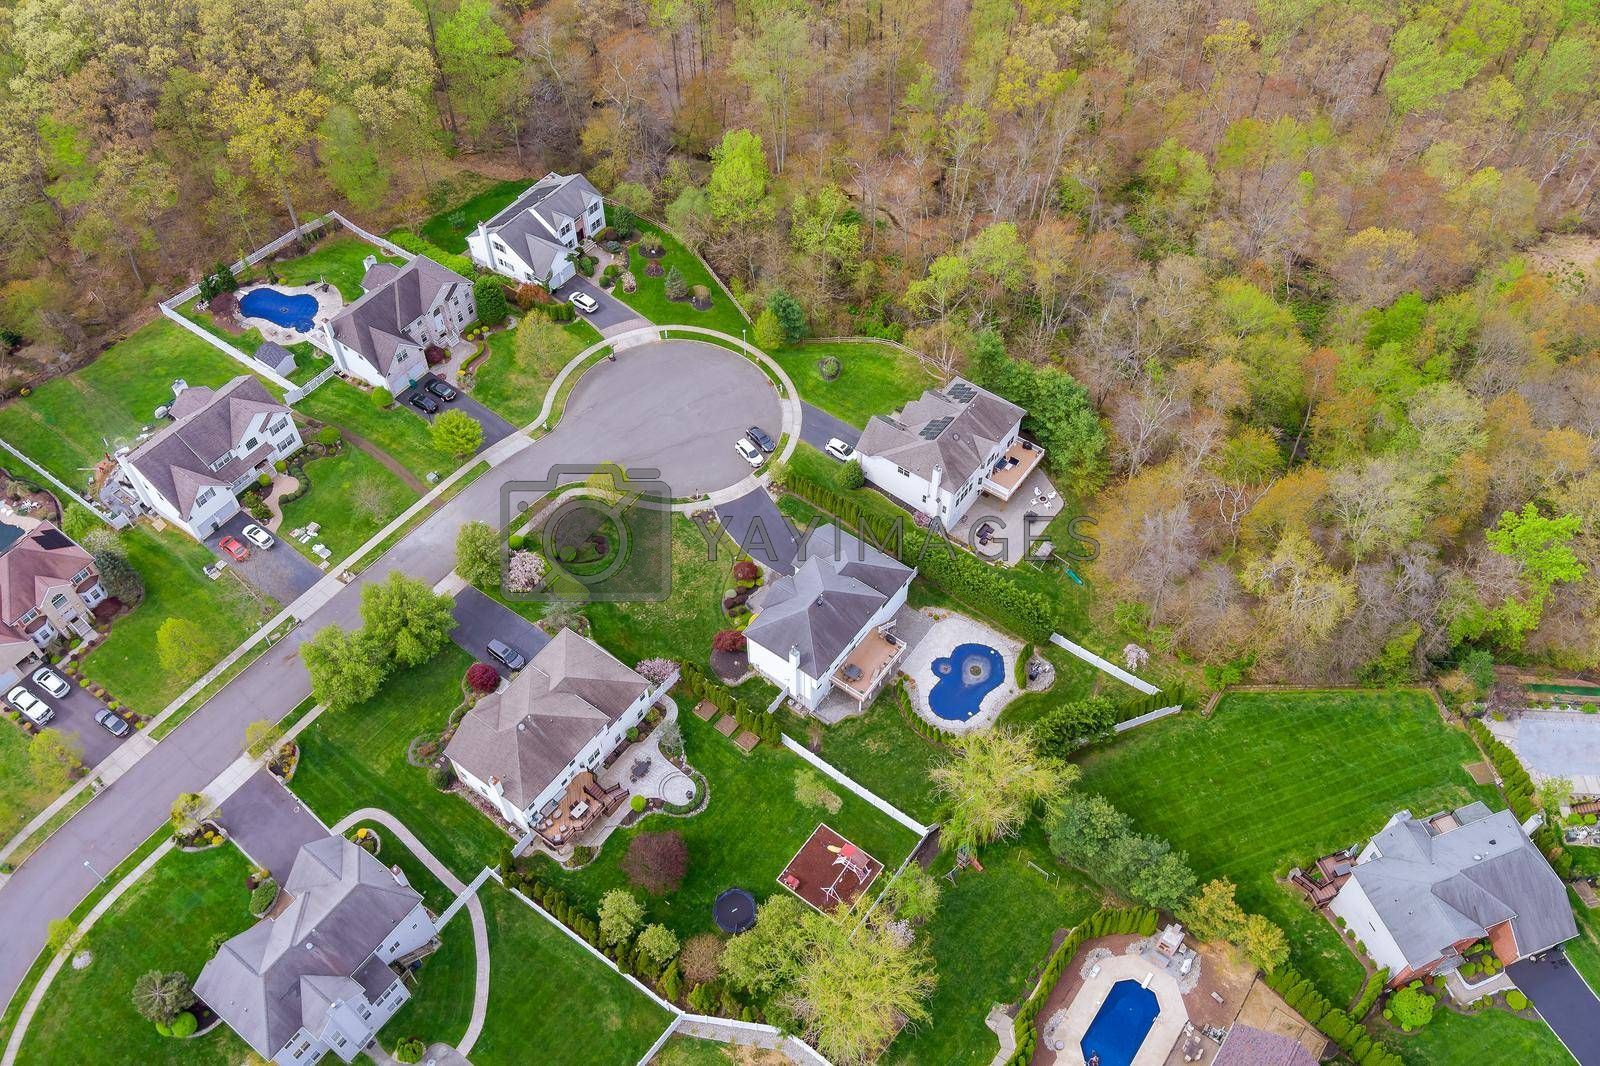 Aerial view on small american town a sleeping area home roofs urban landscape